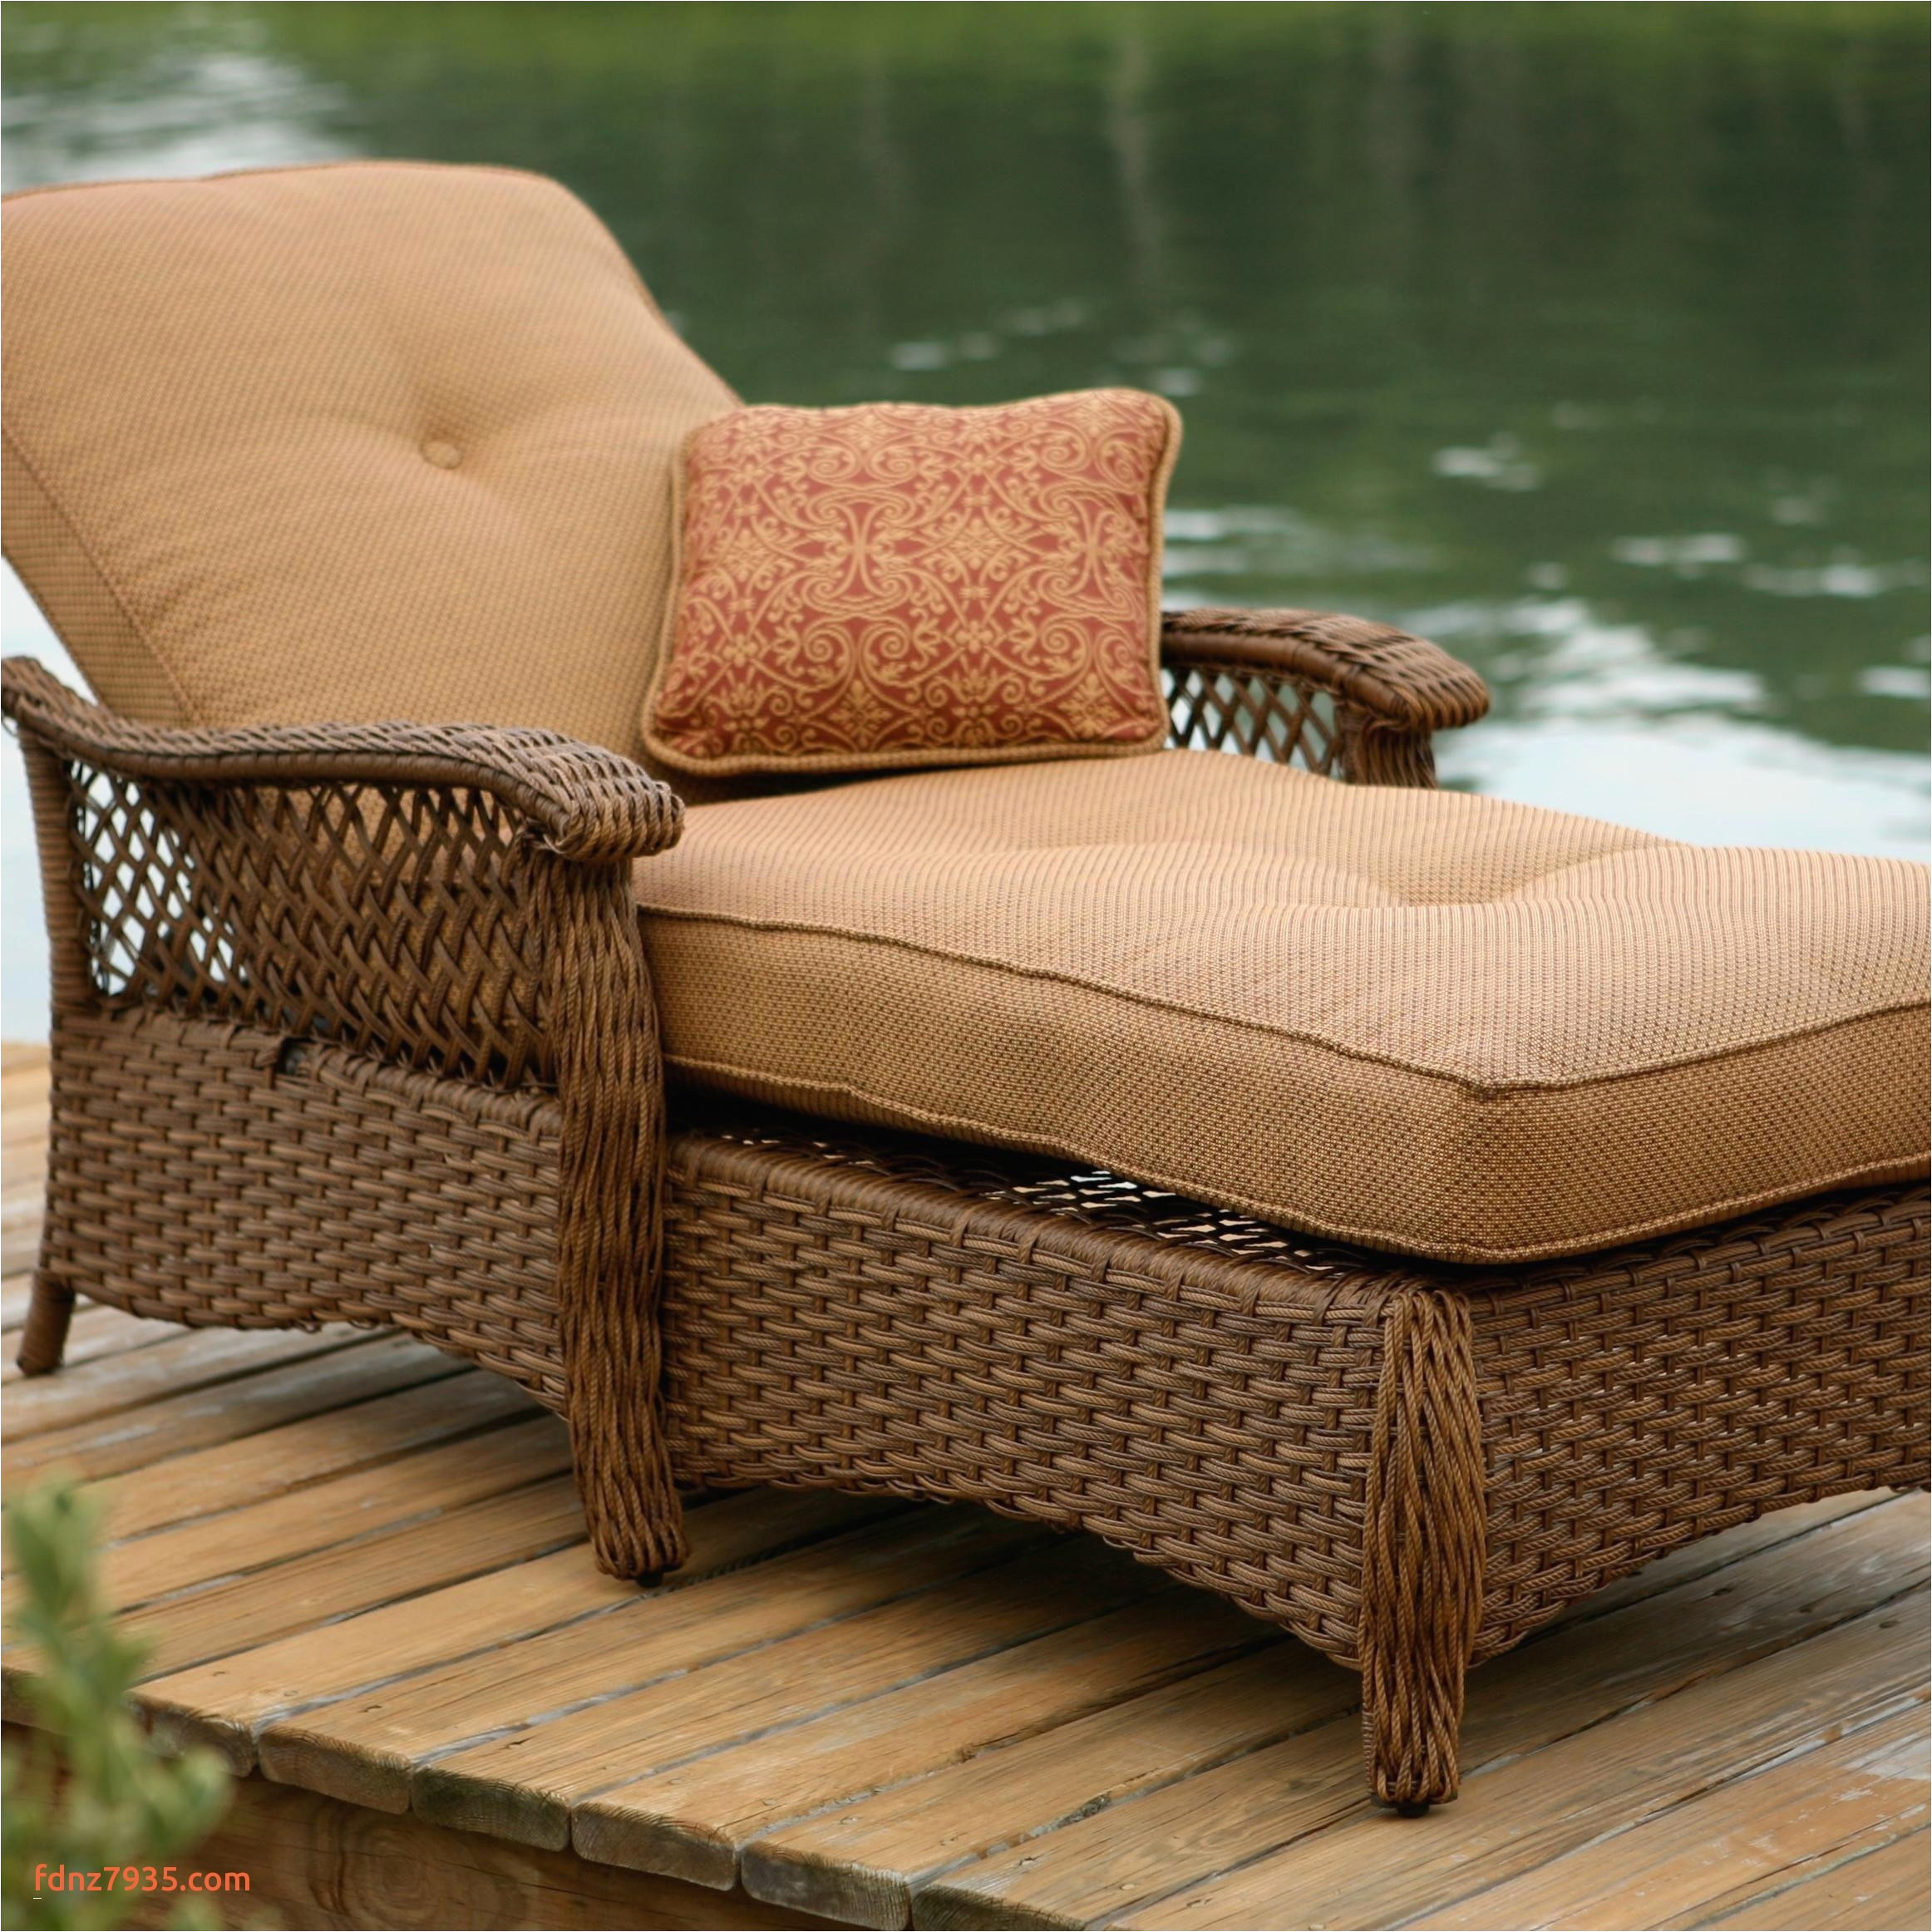 patio chair cushions cheap luxury furniture wicker loveseat lovely wicker outdoor sofa 0d patio patio brown